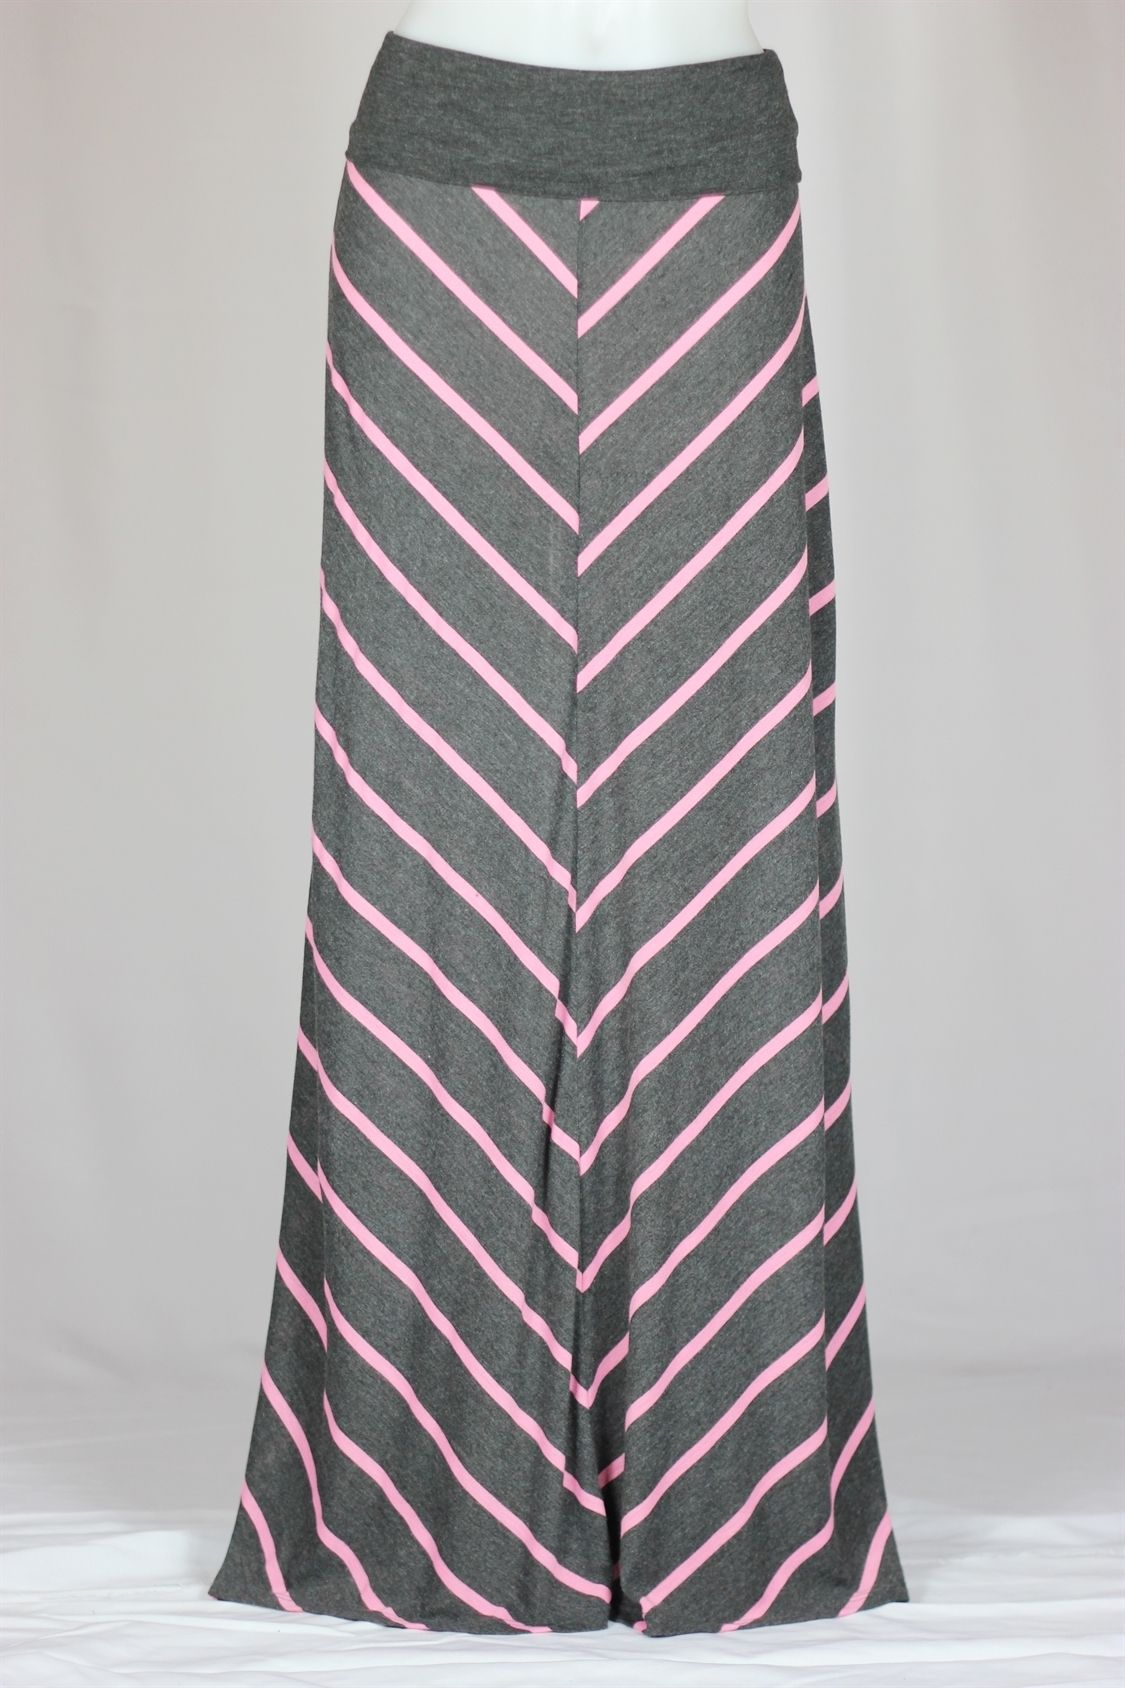 Pink and gray long maxi skirt why in the world donut the stripes